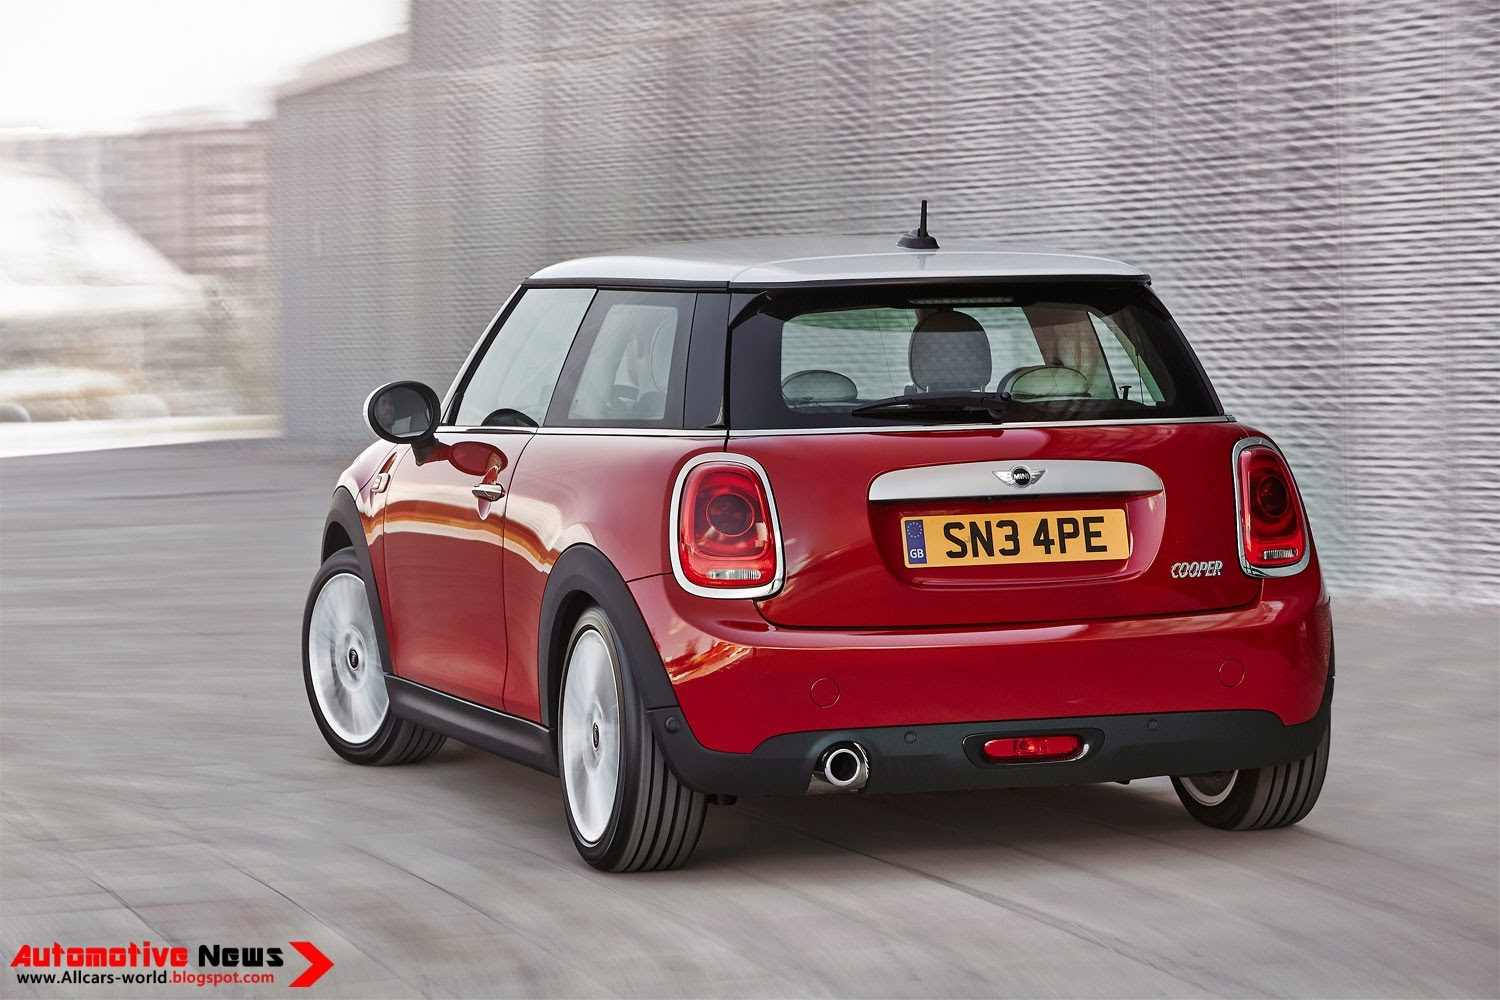 The 2014 mini cooper range is on the whole an example of how well gas mileage and fun to drive qualities can be melded when weight and size are kept to